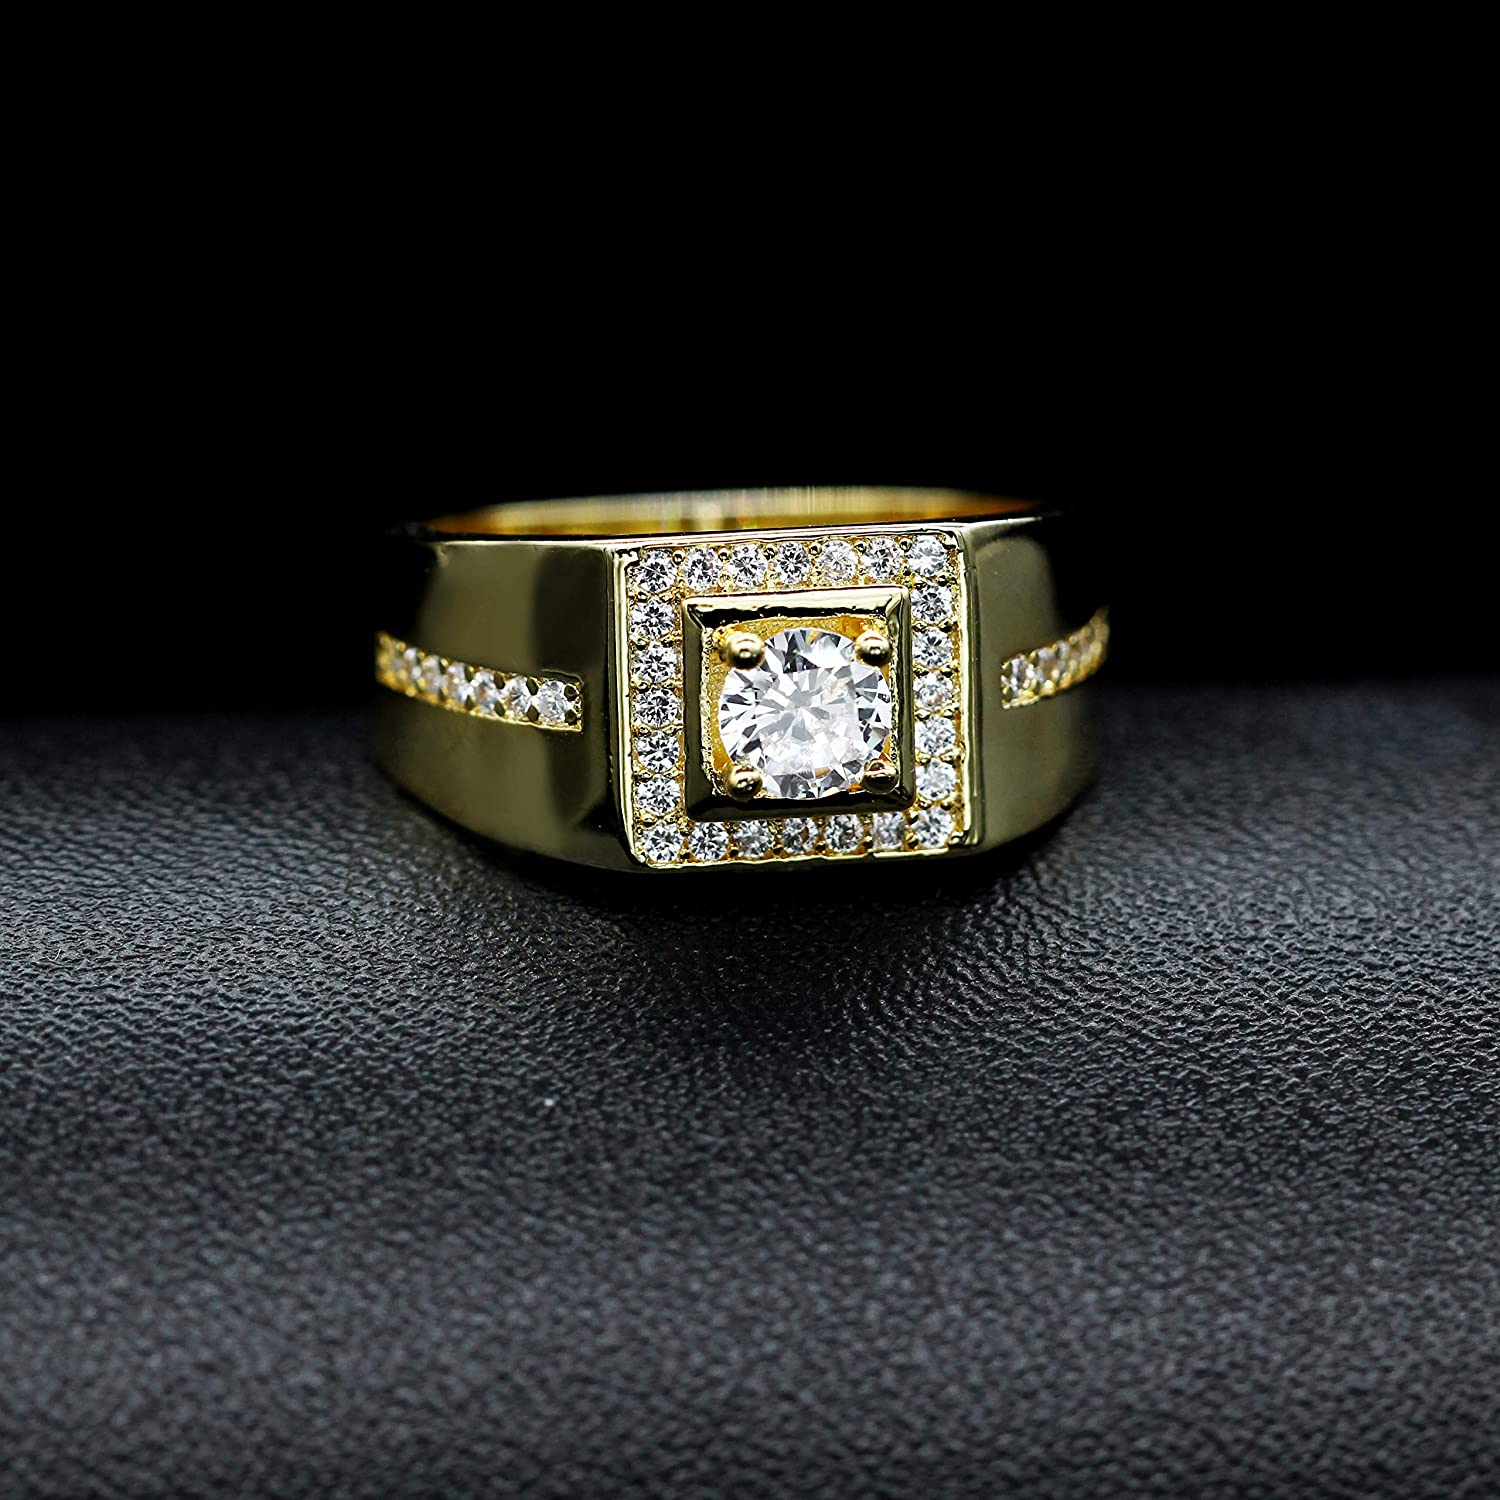 Uloveido Mens 8 mm Round Cubic Zirconia Comfort Fit Wedding Band Platinum Rose Gold Plated Square Engagement Ring KR201